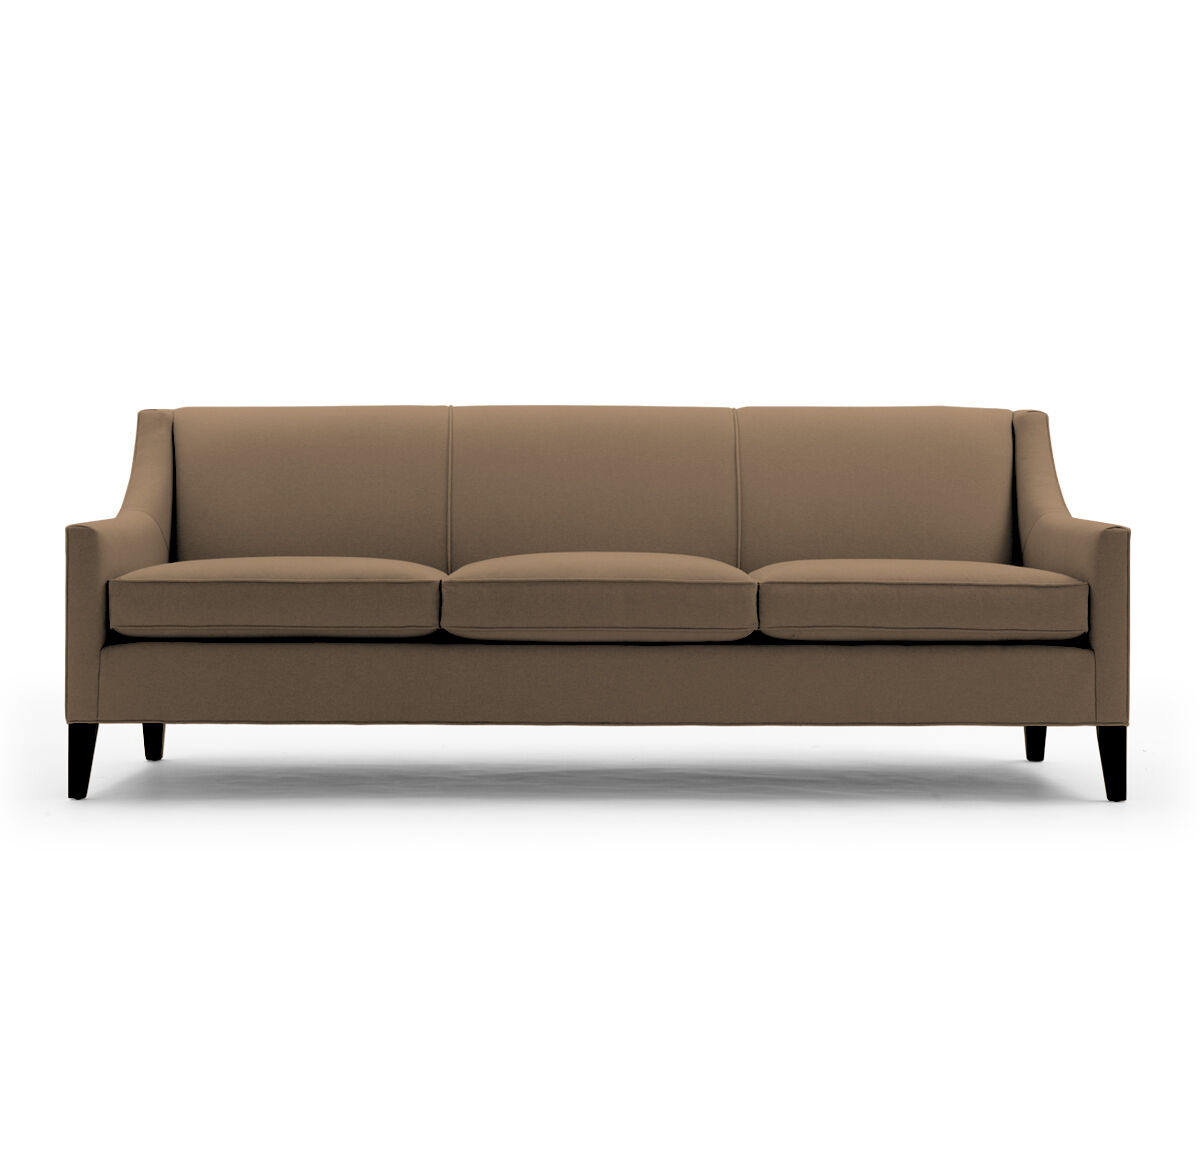 mitc gold hunter sofa bed pull out uk mitchell cara home the honoroak